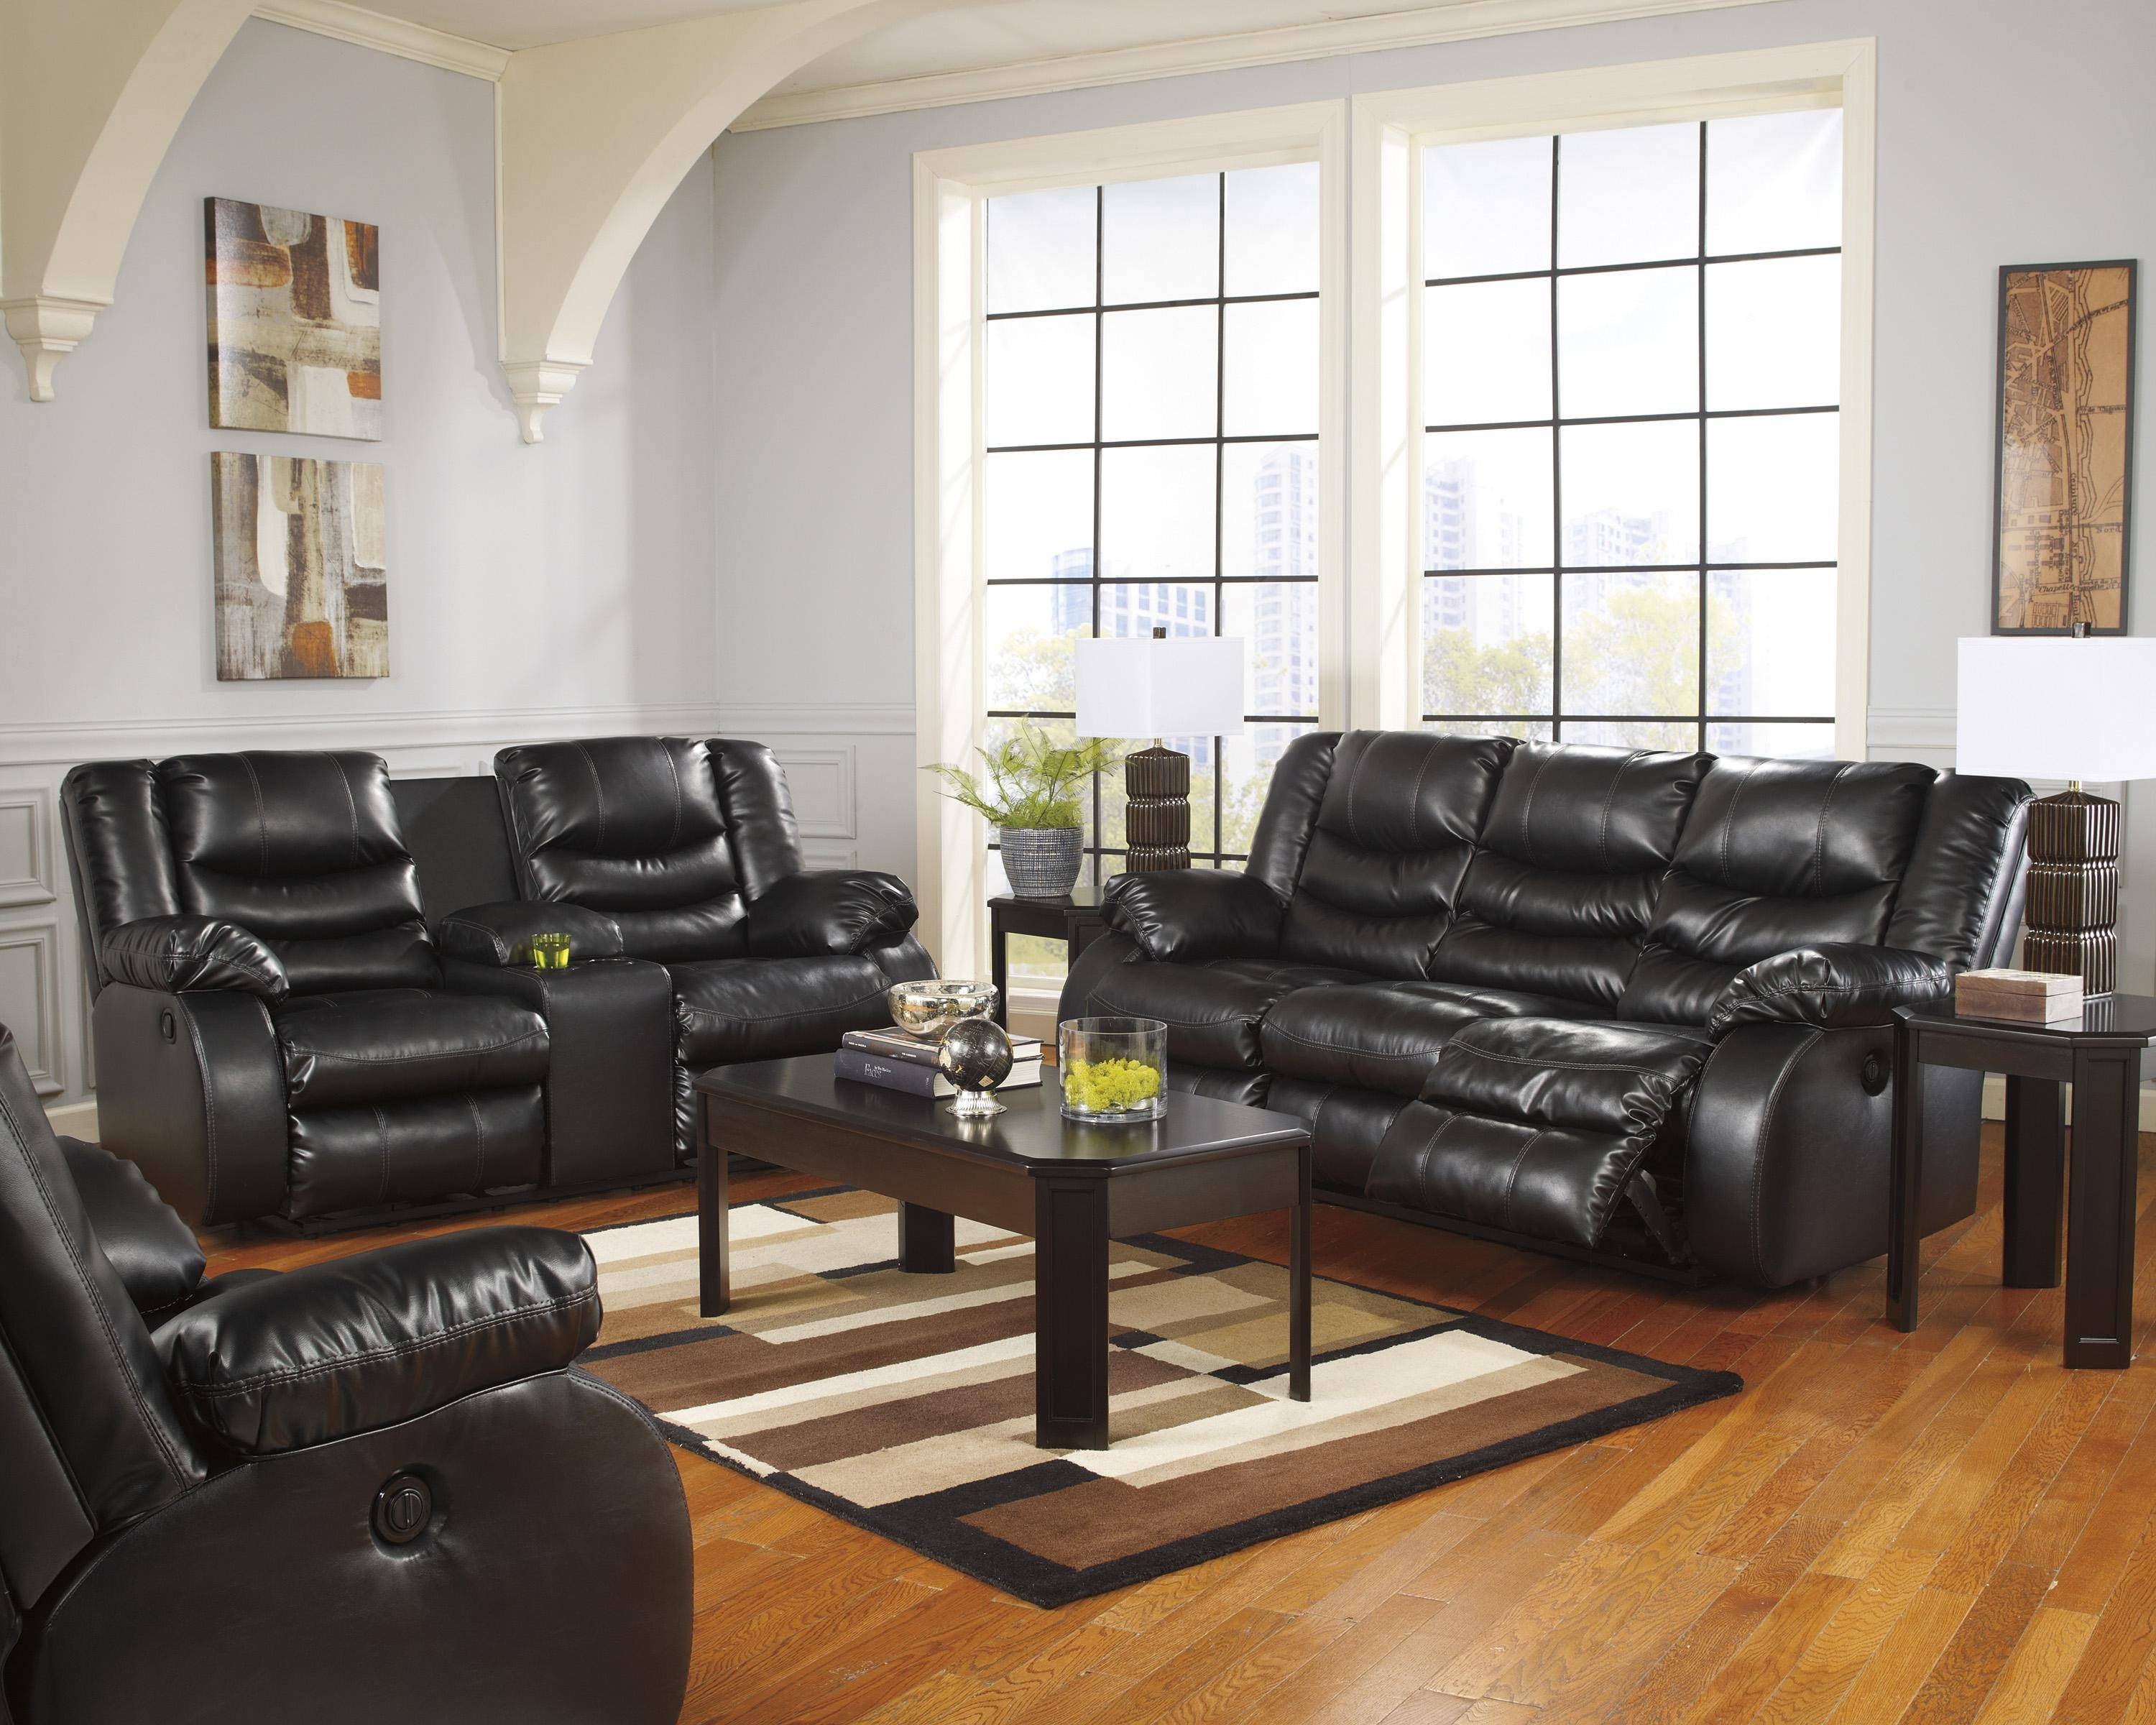 New Ideas Black Leather Sofa Recliner With Ventura Contemporary Within Contemporary Black Leather Sofas (View 20 of 30)